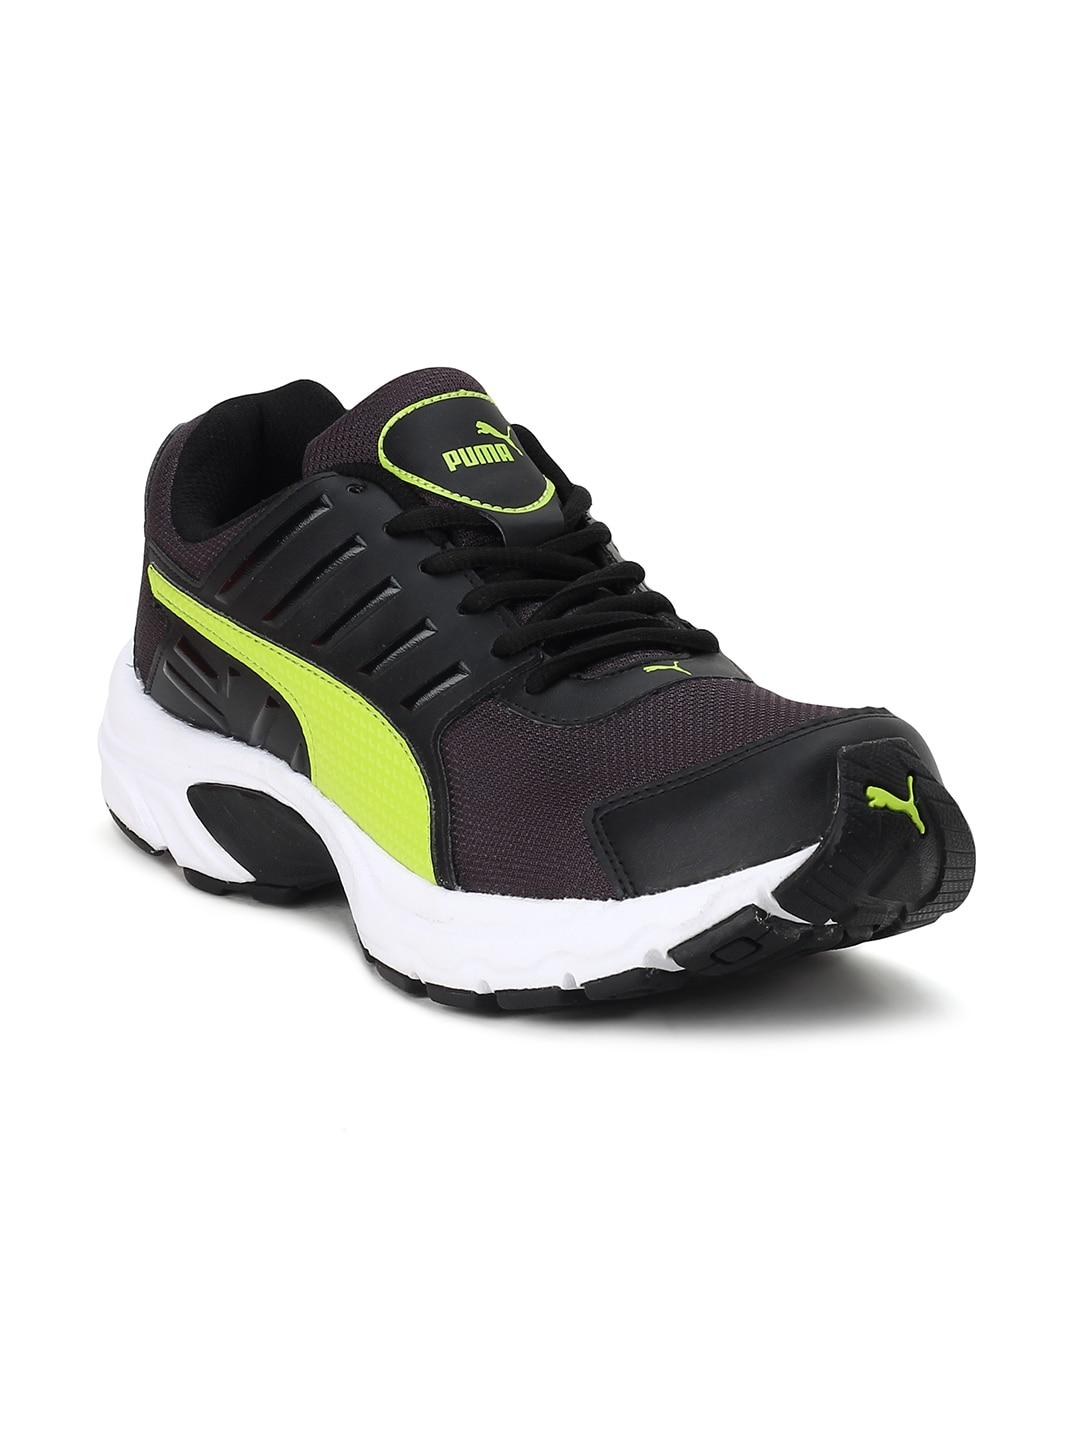 8064ff77c683fc Puma Shoe Cat - Buy Puma Shoe Cat online in India